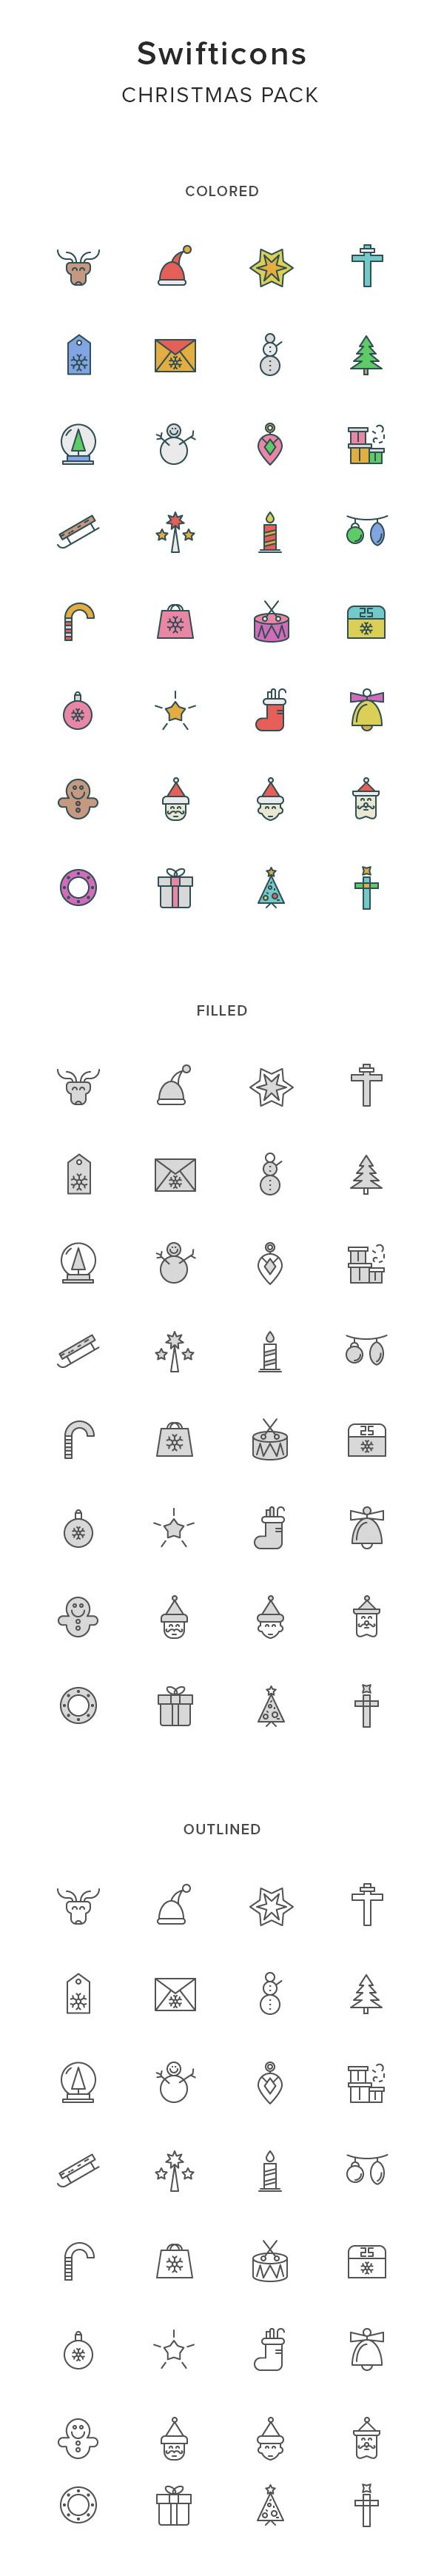 The #freebie of the day is a cheerful set of 32 #Christmas themed #icons available in 3 styles: outlined, filled and colored...